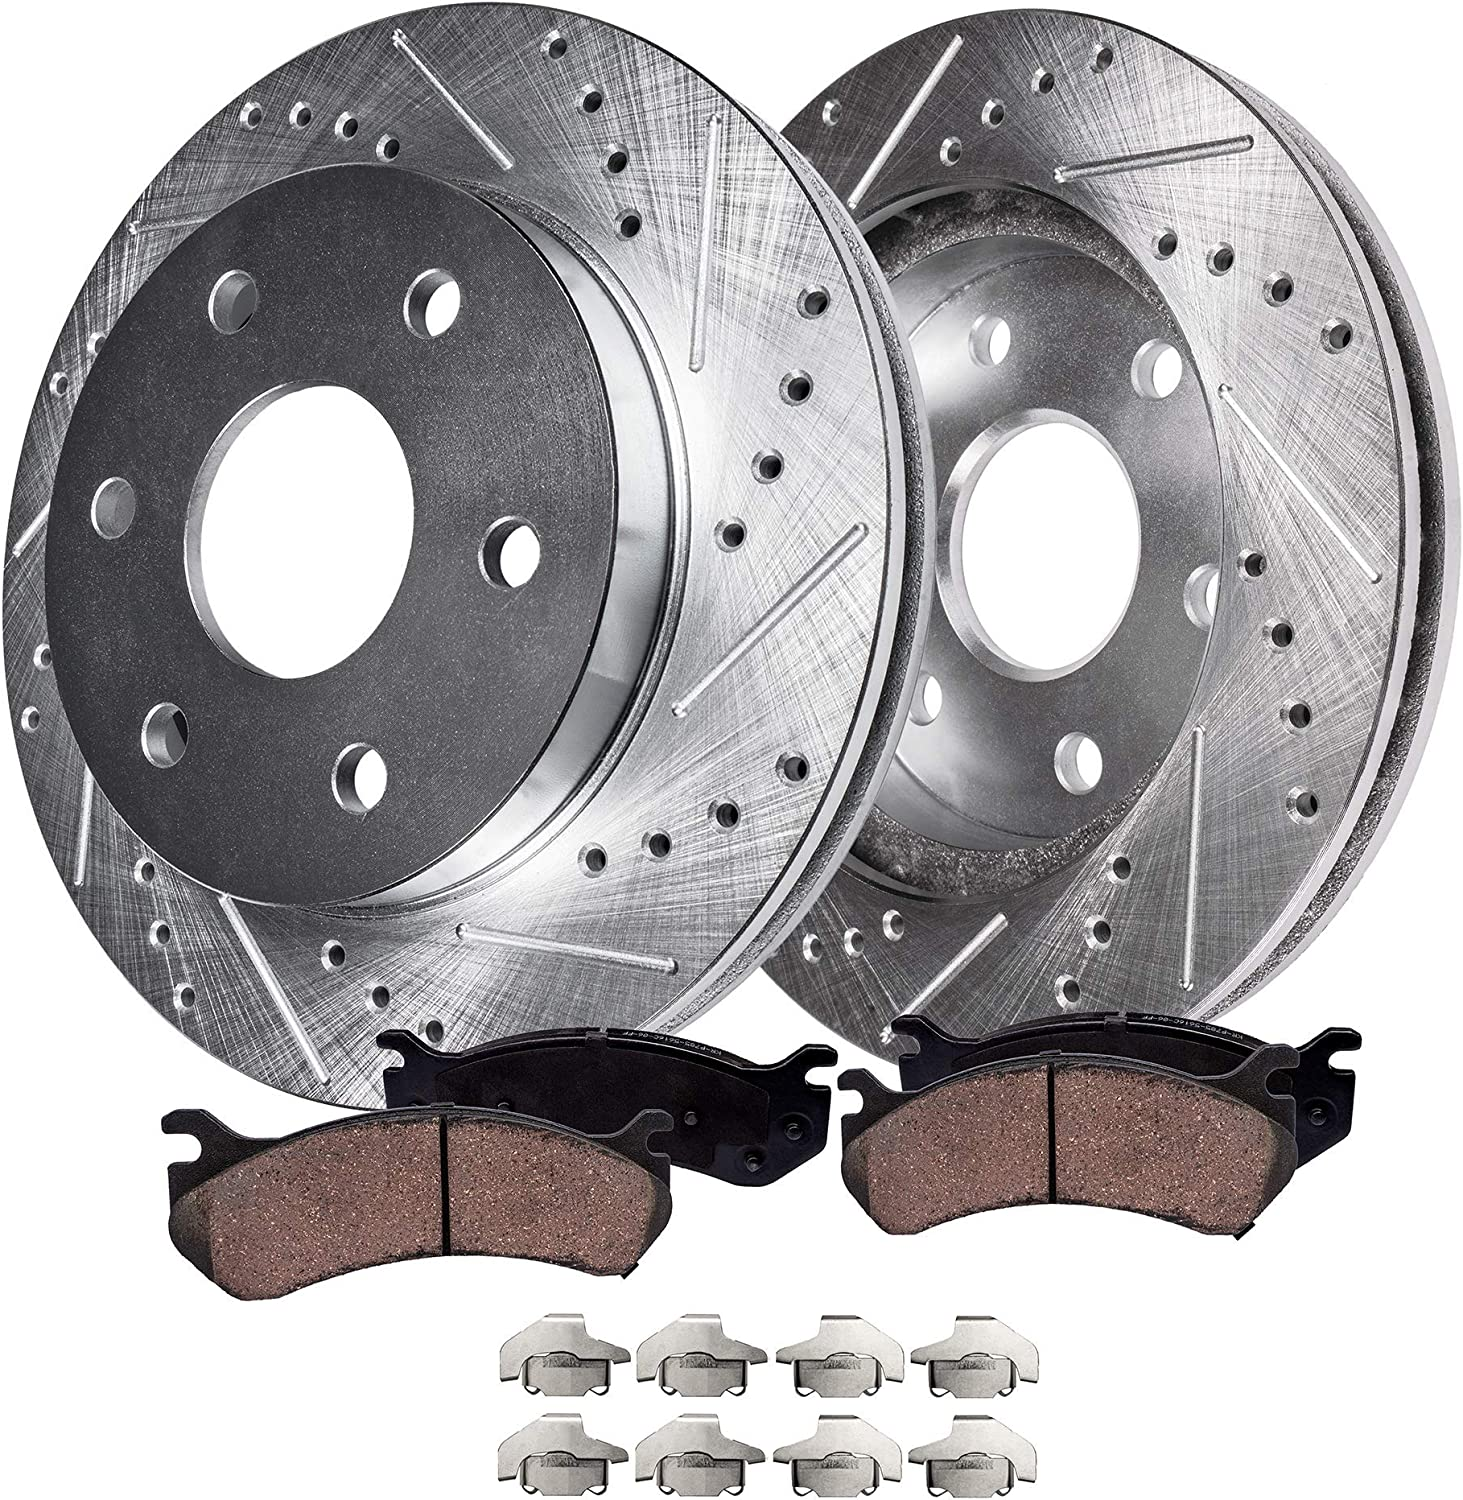 F+R 4 Cross Drilled Rotors /& 8 Ceramic Pads for 2013-2015 Hyundai Santa Fe Sport